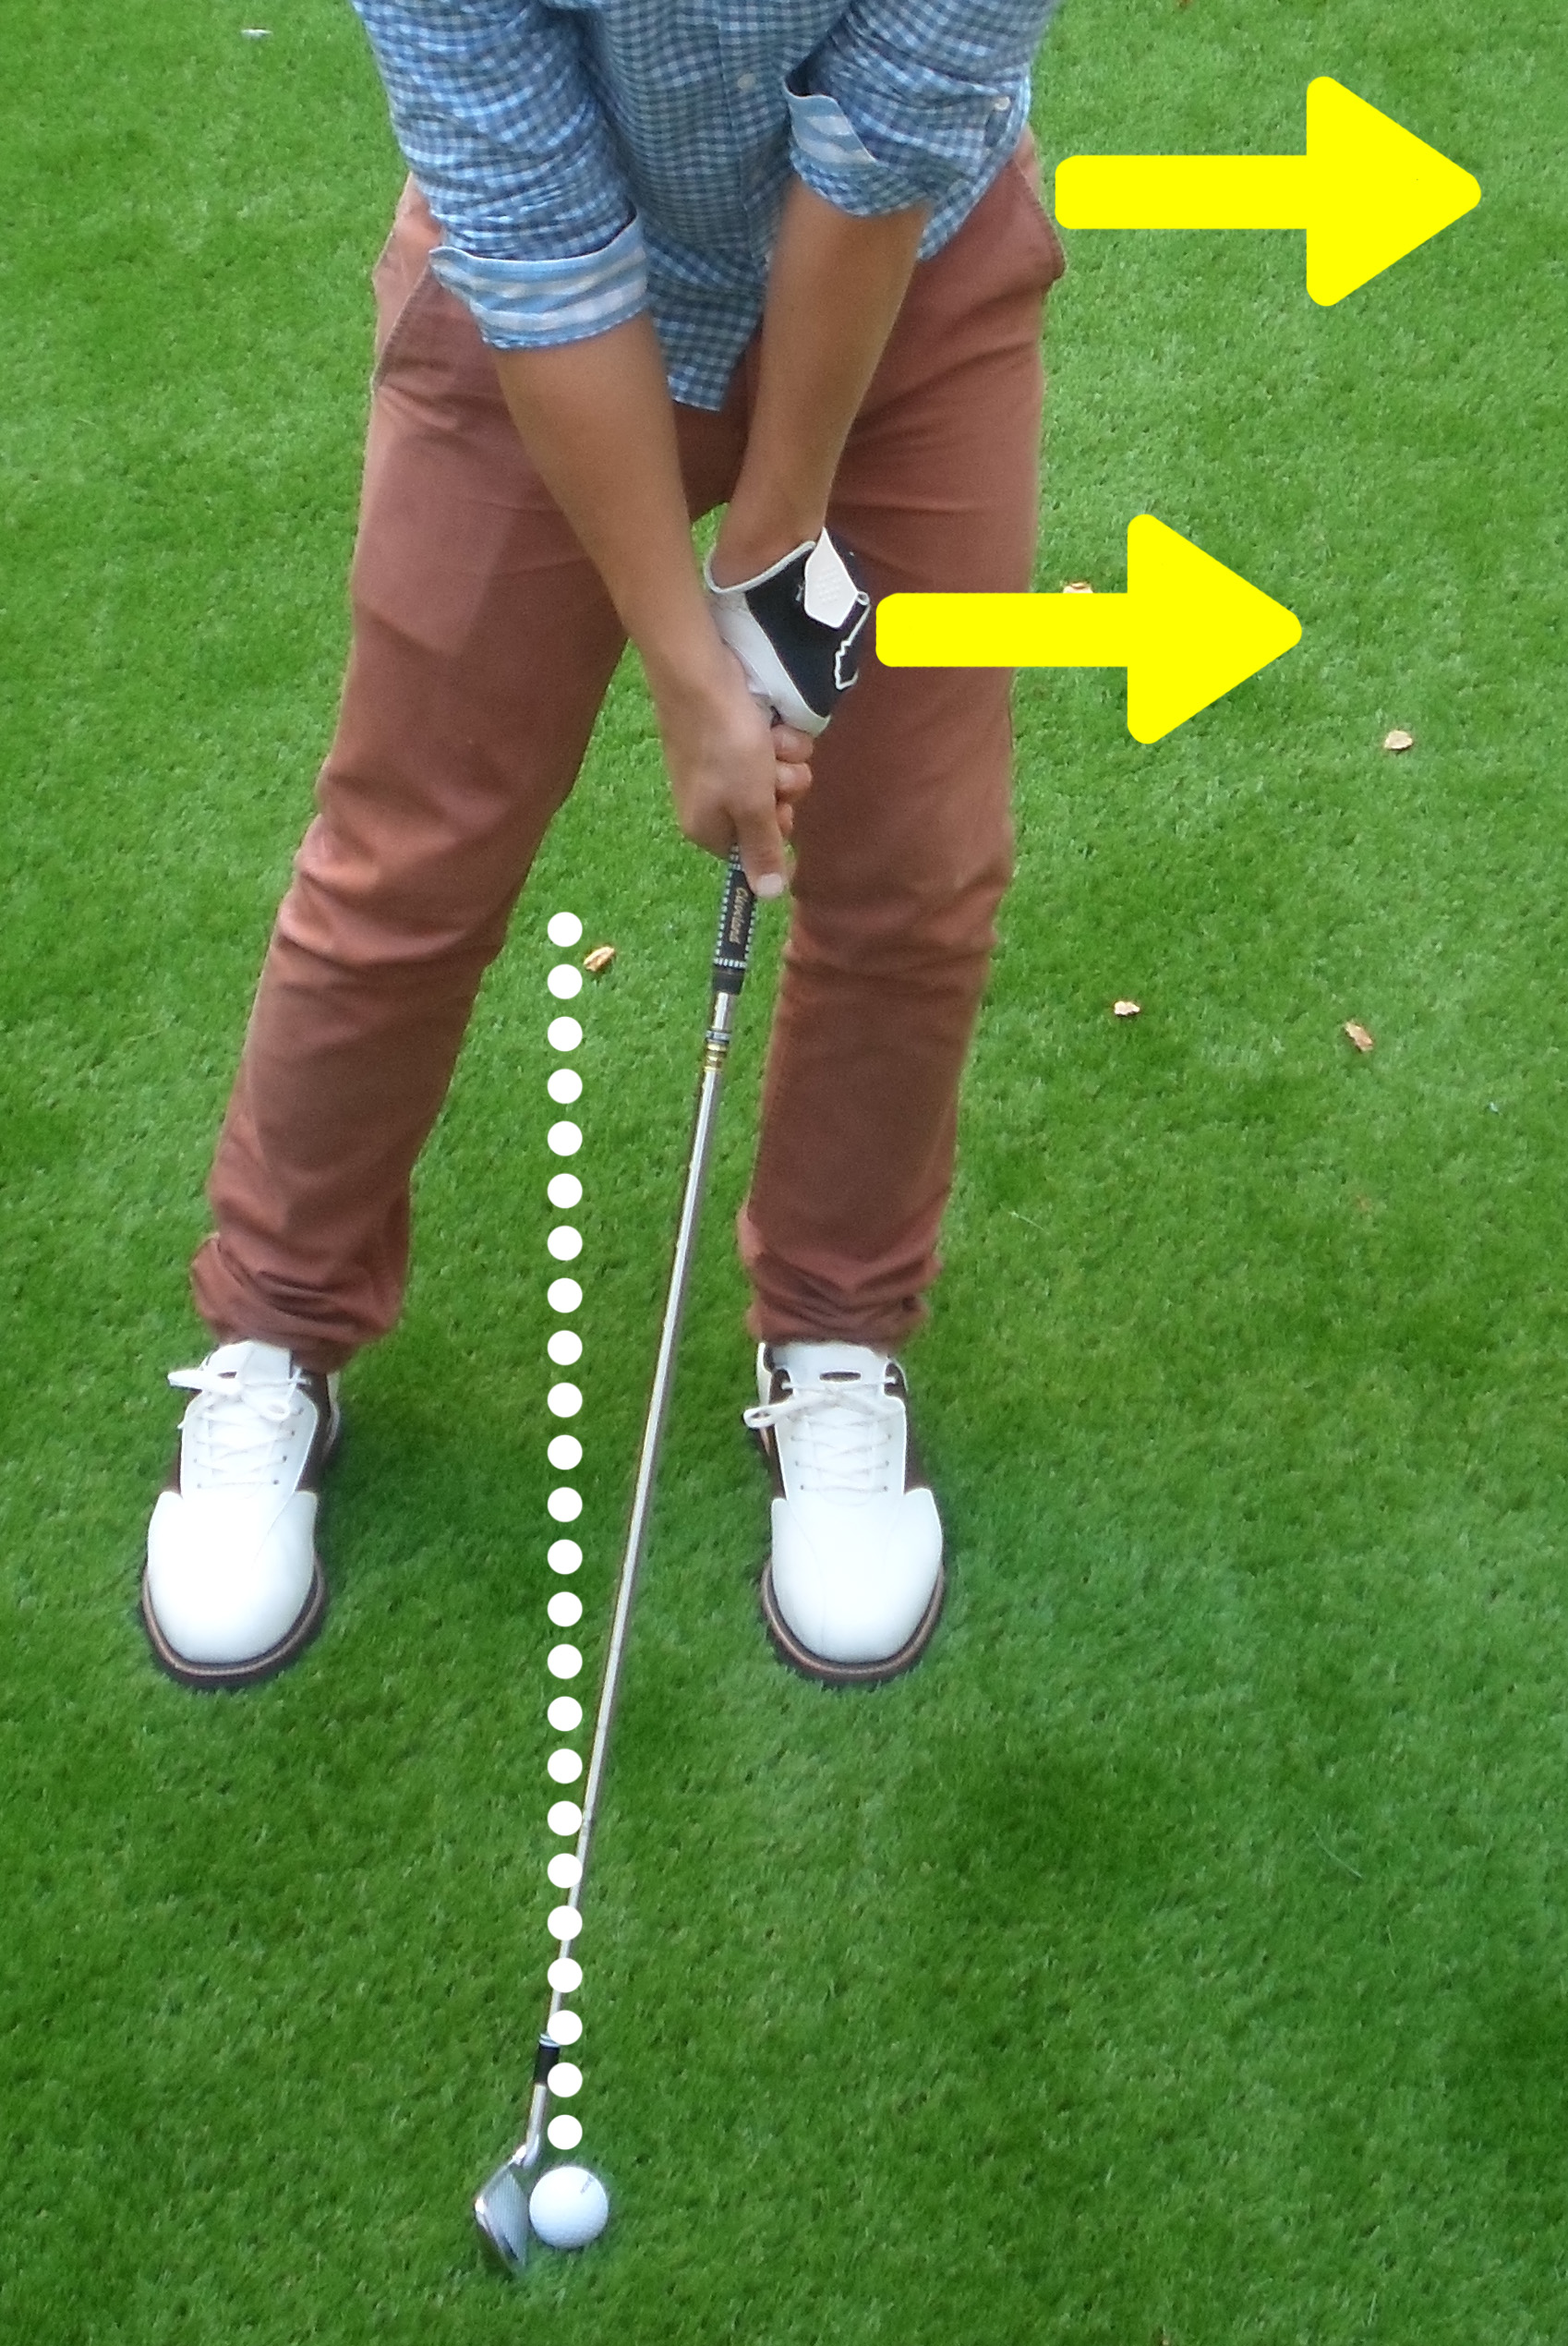 Fig.2 - Ball needs to be either middle or back of stance while your hips and hands are all forward (click to enlarge)